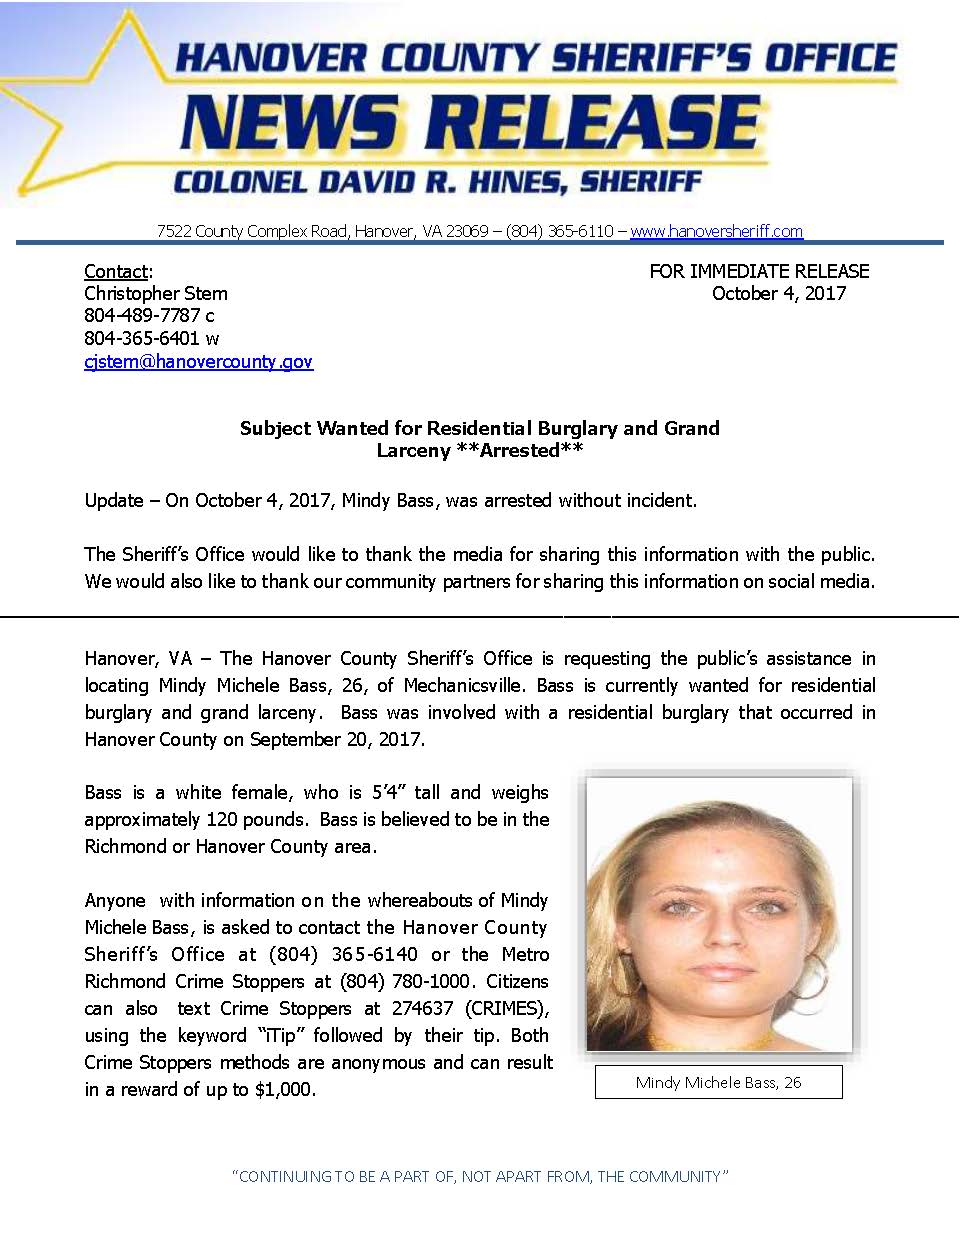 HCSO - Suspect Wanted for Residential Burglary- Mindy Bass- October 2017 ARRESTED